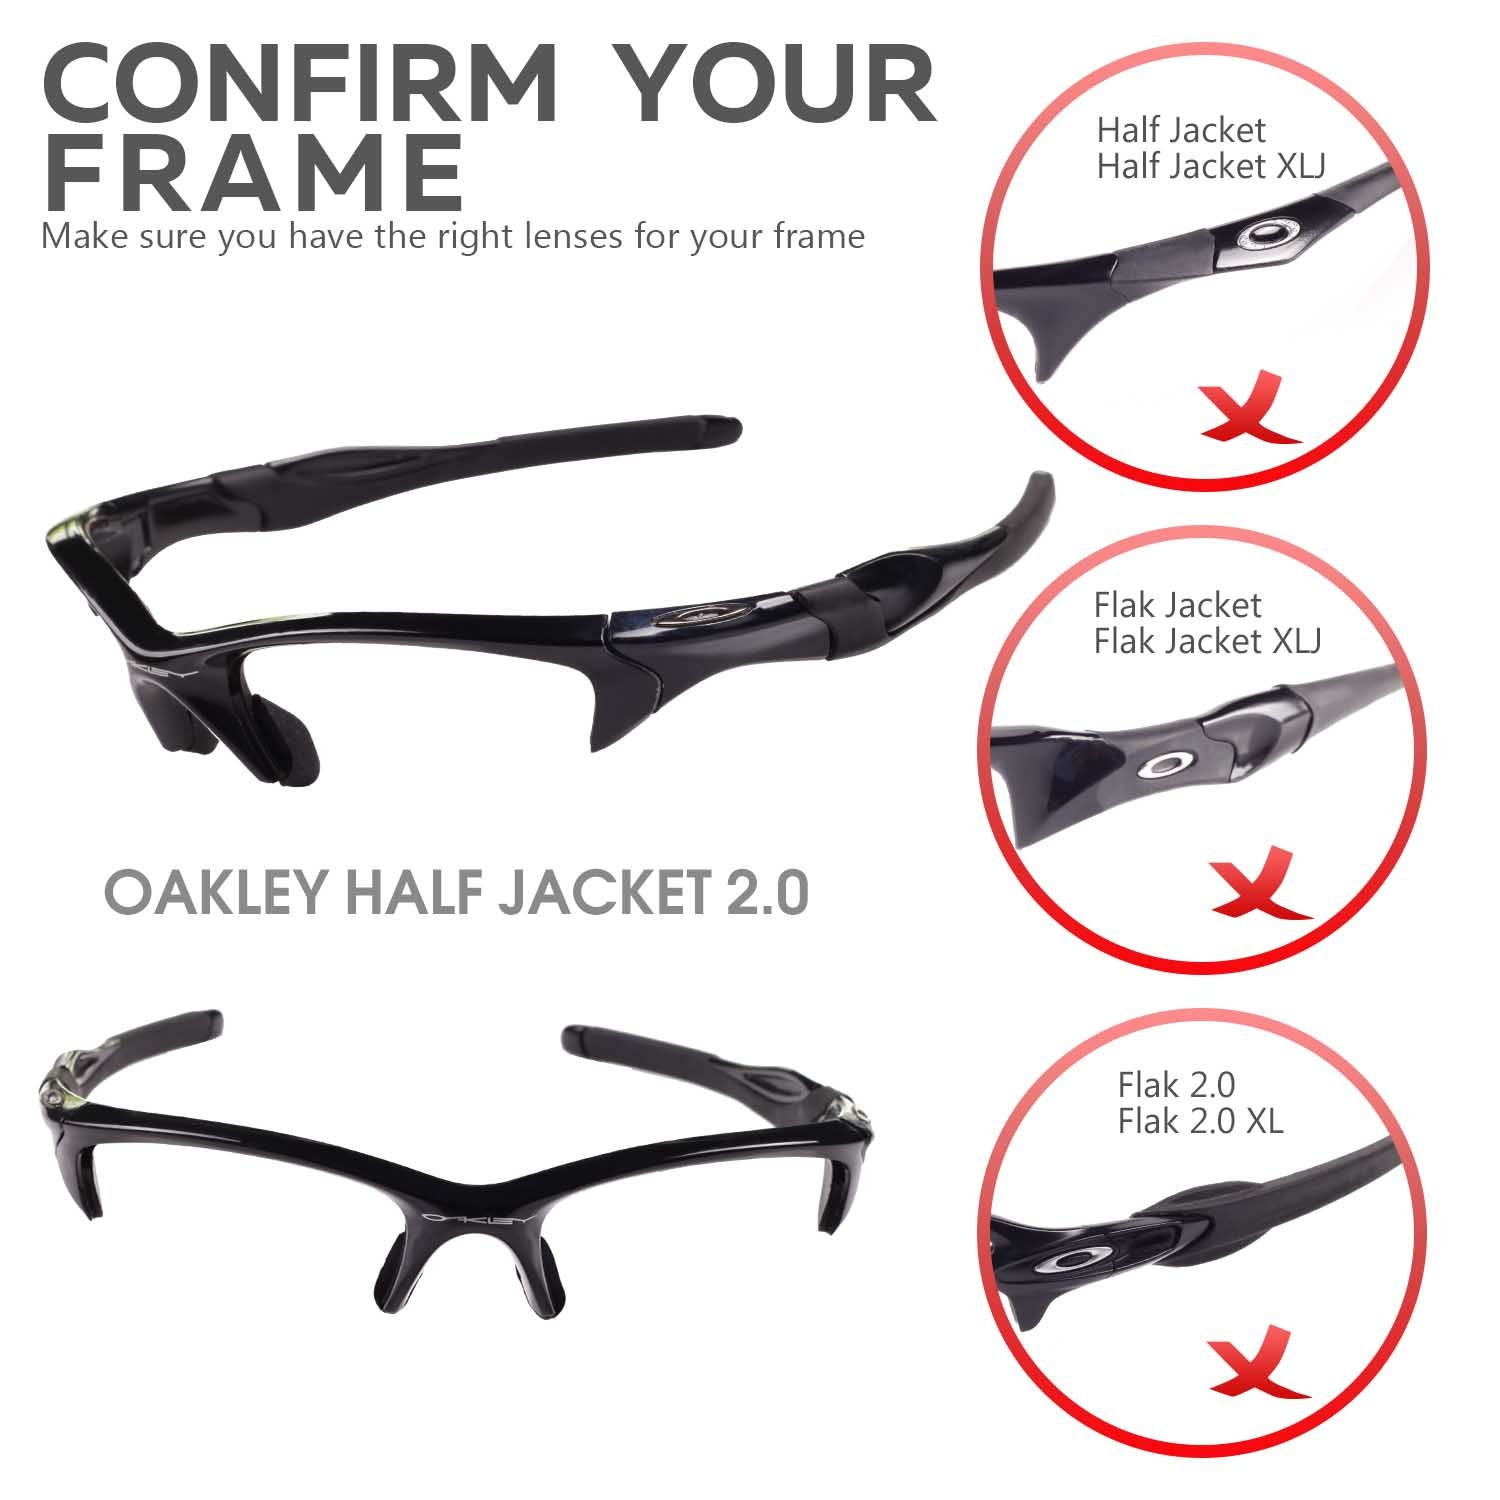 5c4c9037b9 Walleva Replacement Lenses Or Lenses Rubber for Oakley Half Jacket 2.0  Sunglasses - 53 Options larger image